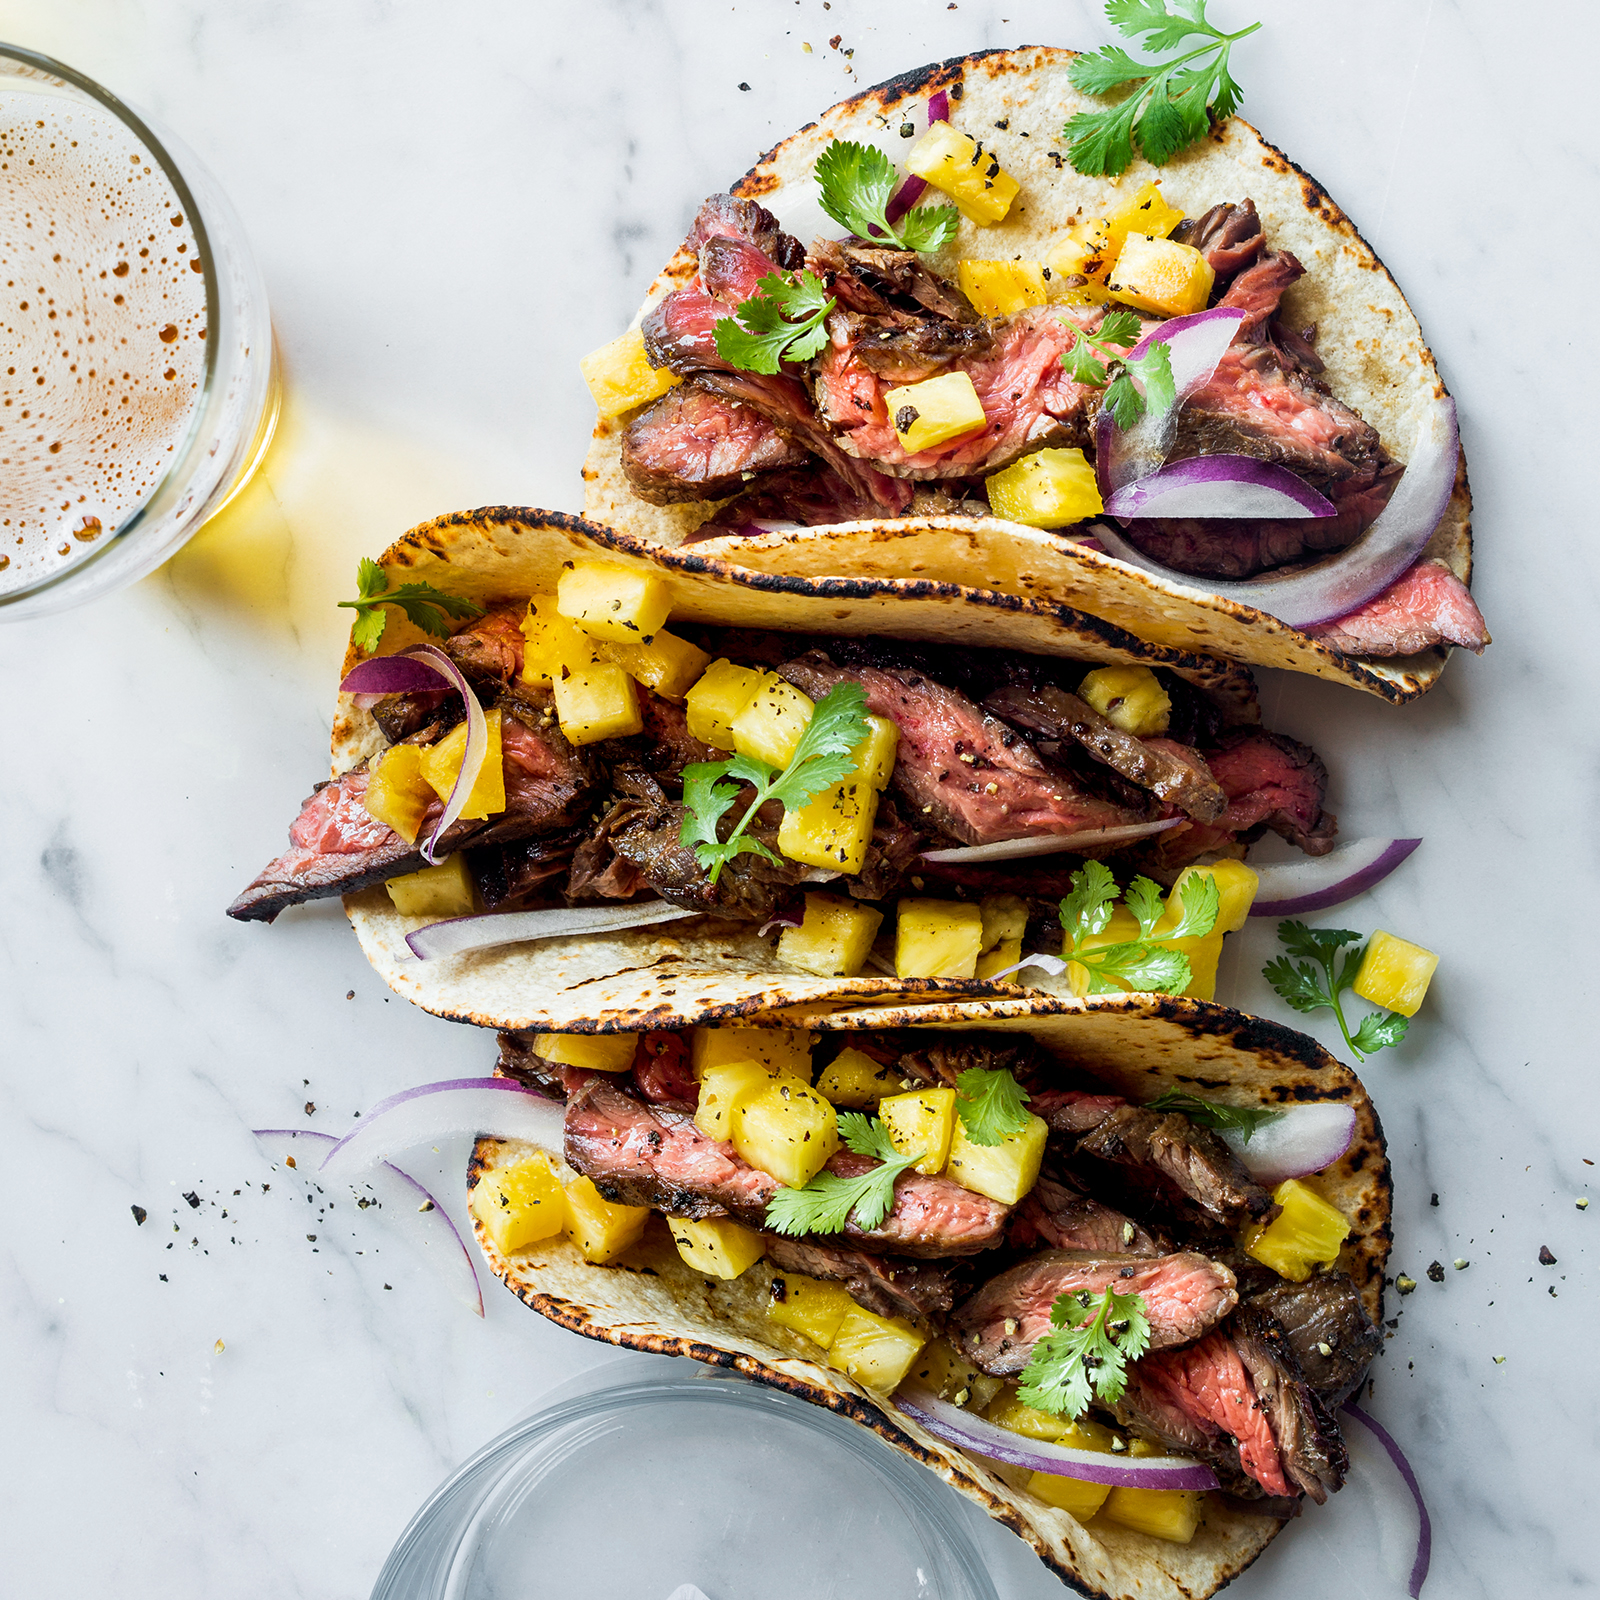 Steak tacos with pineapple recipe justin chapple food wine for The best fish taco recipe in the world